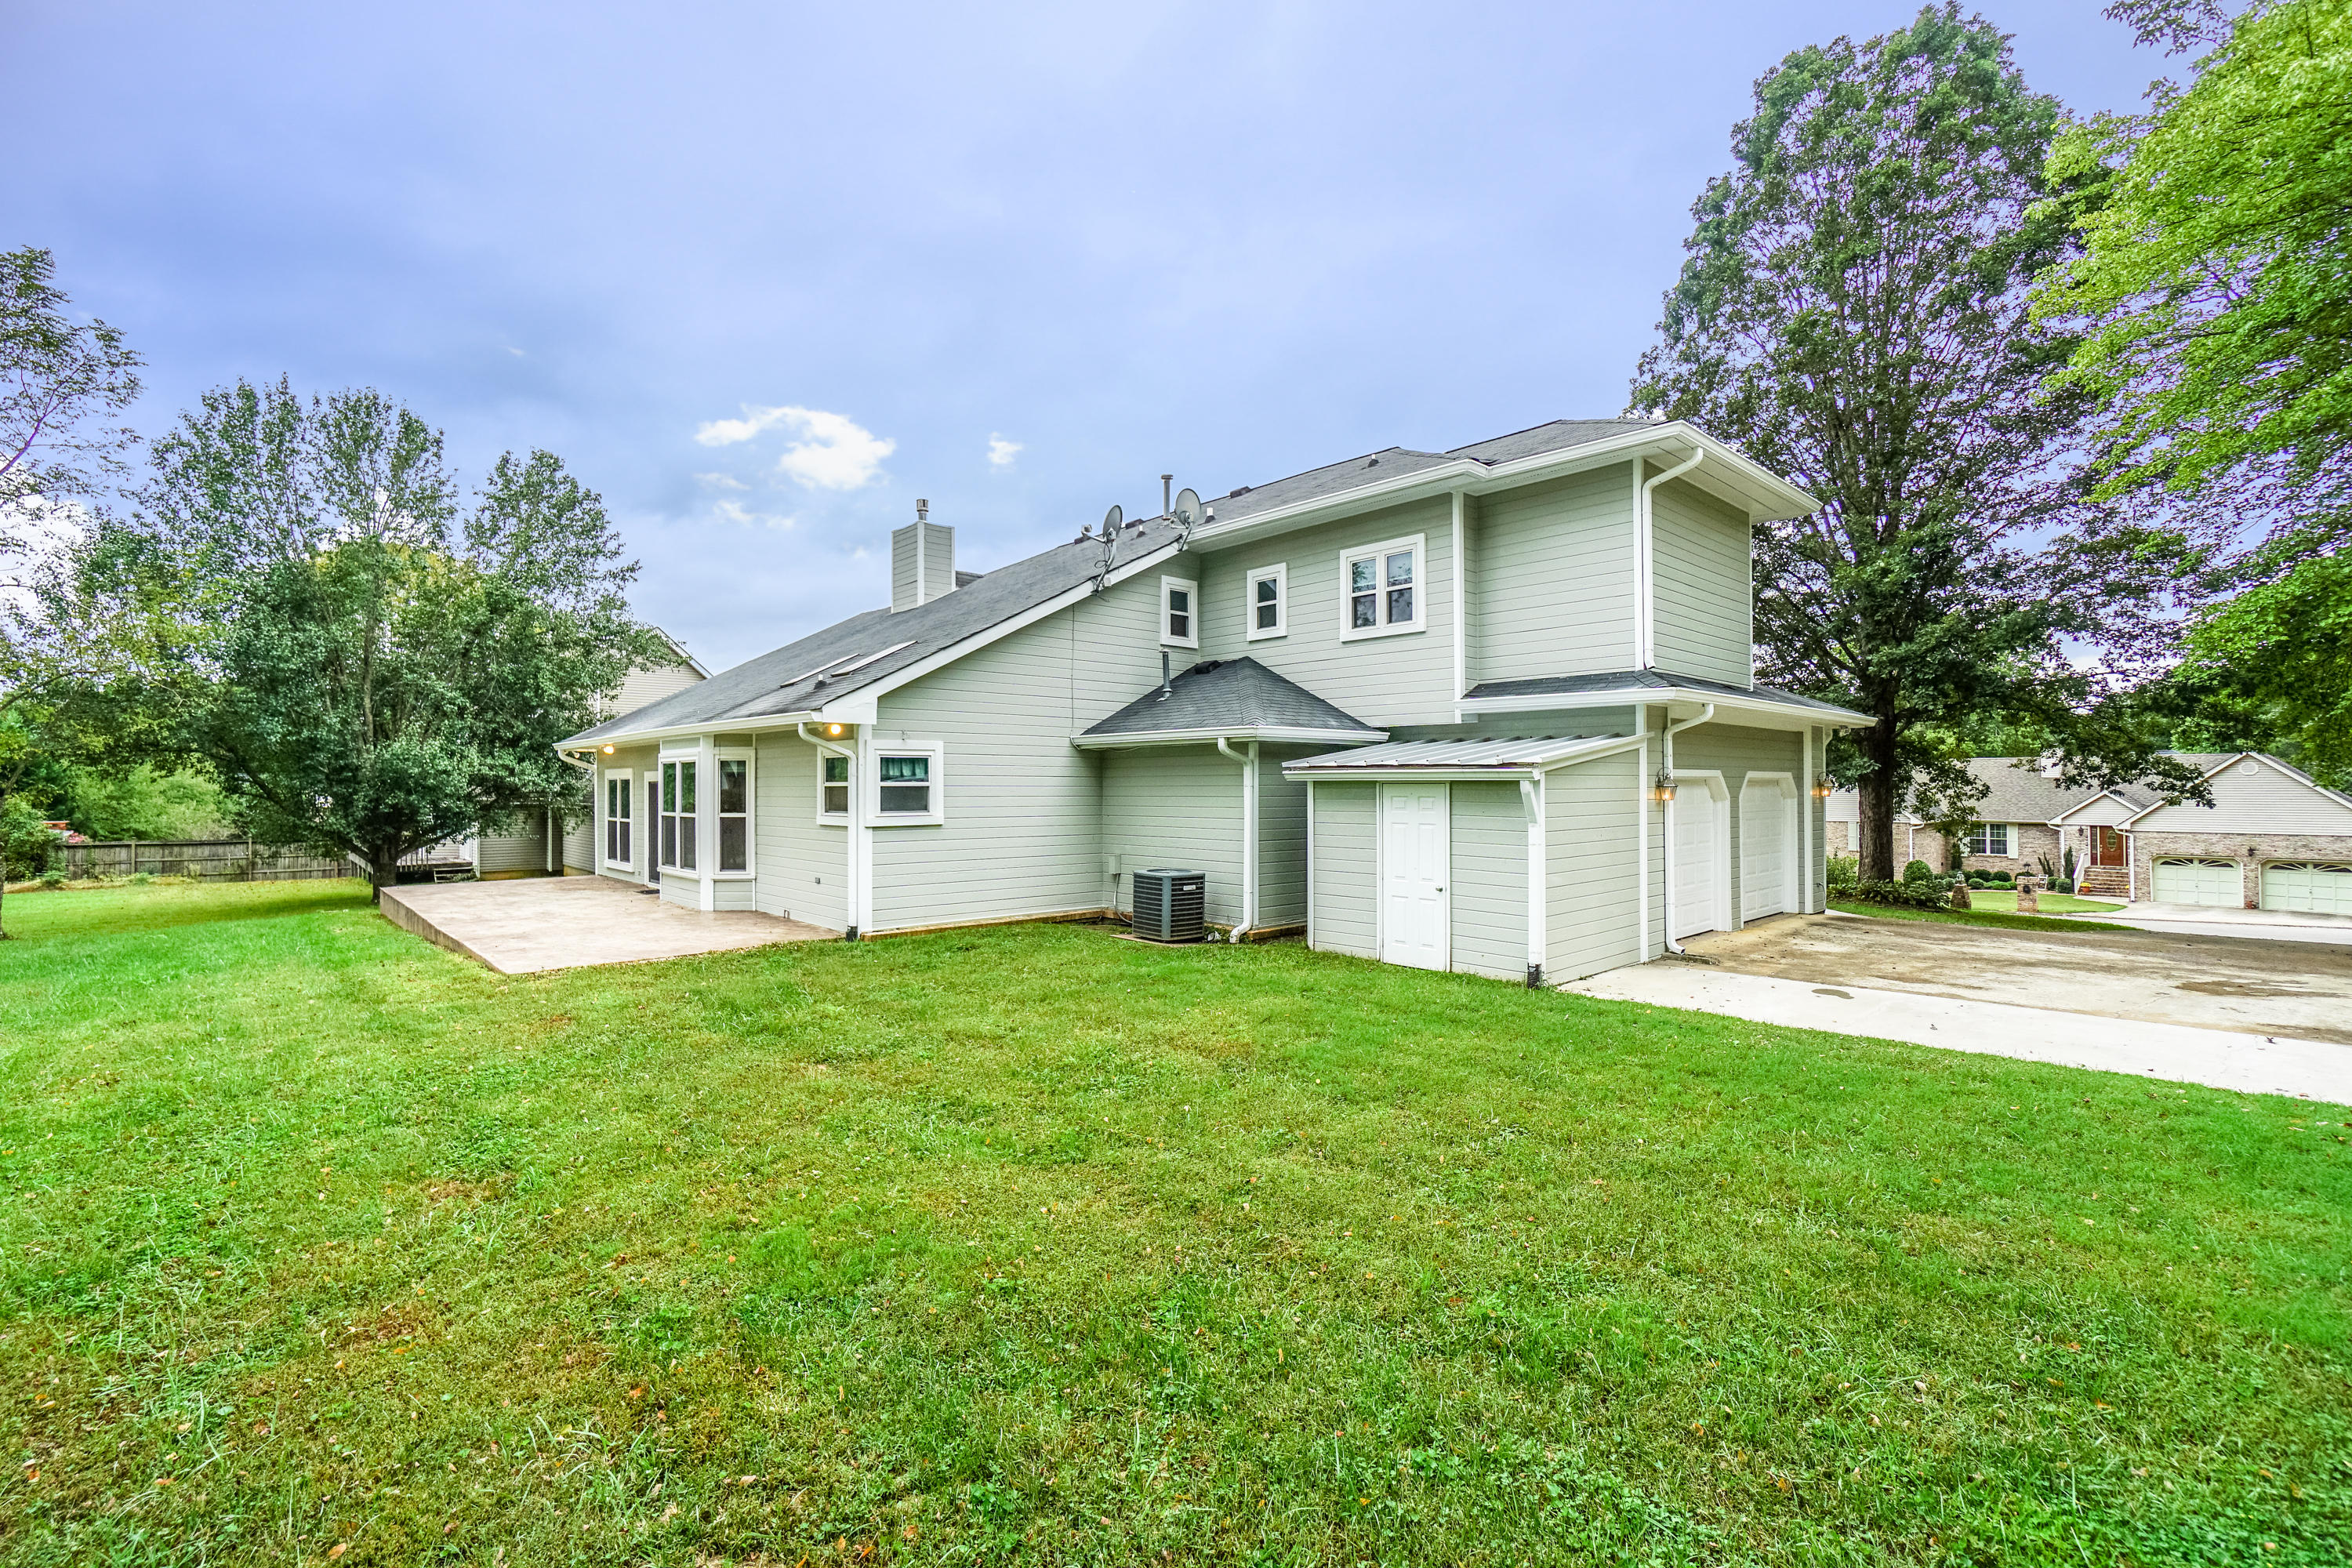 2812 Deerfield Rd, Ooltewah, TN 37363